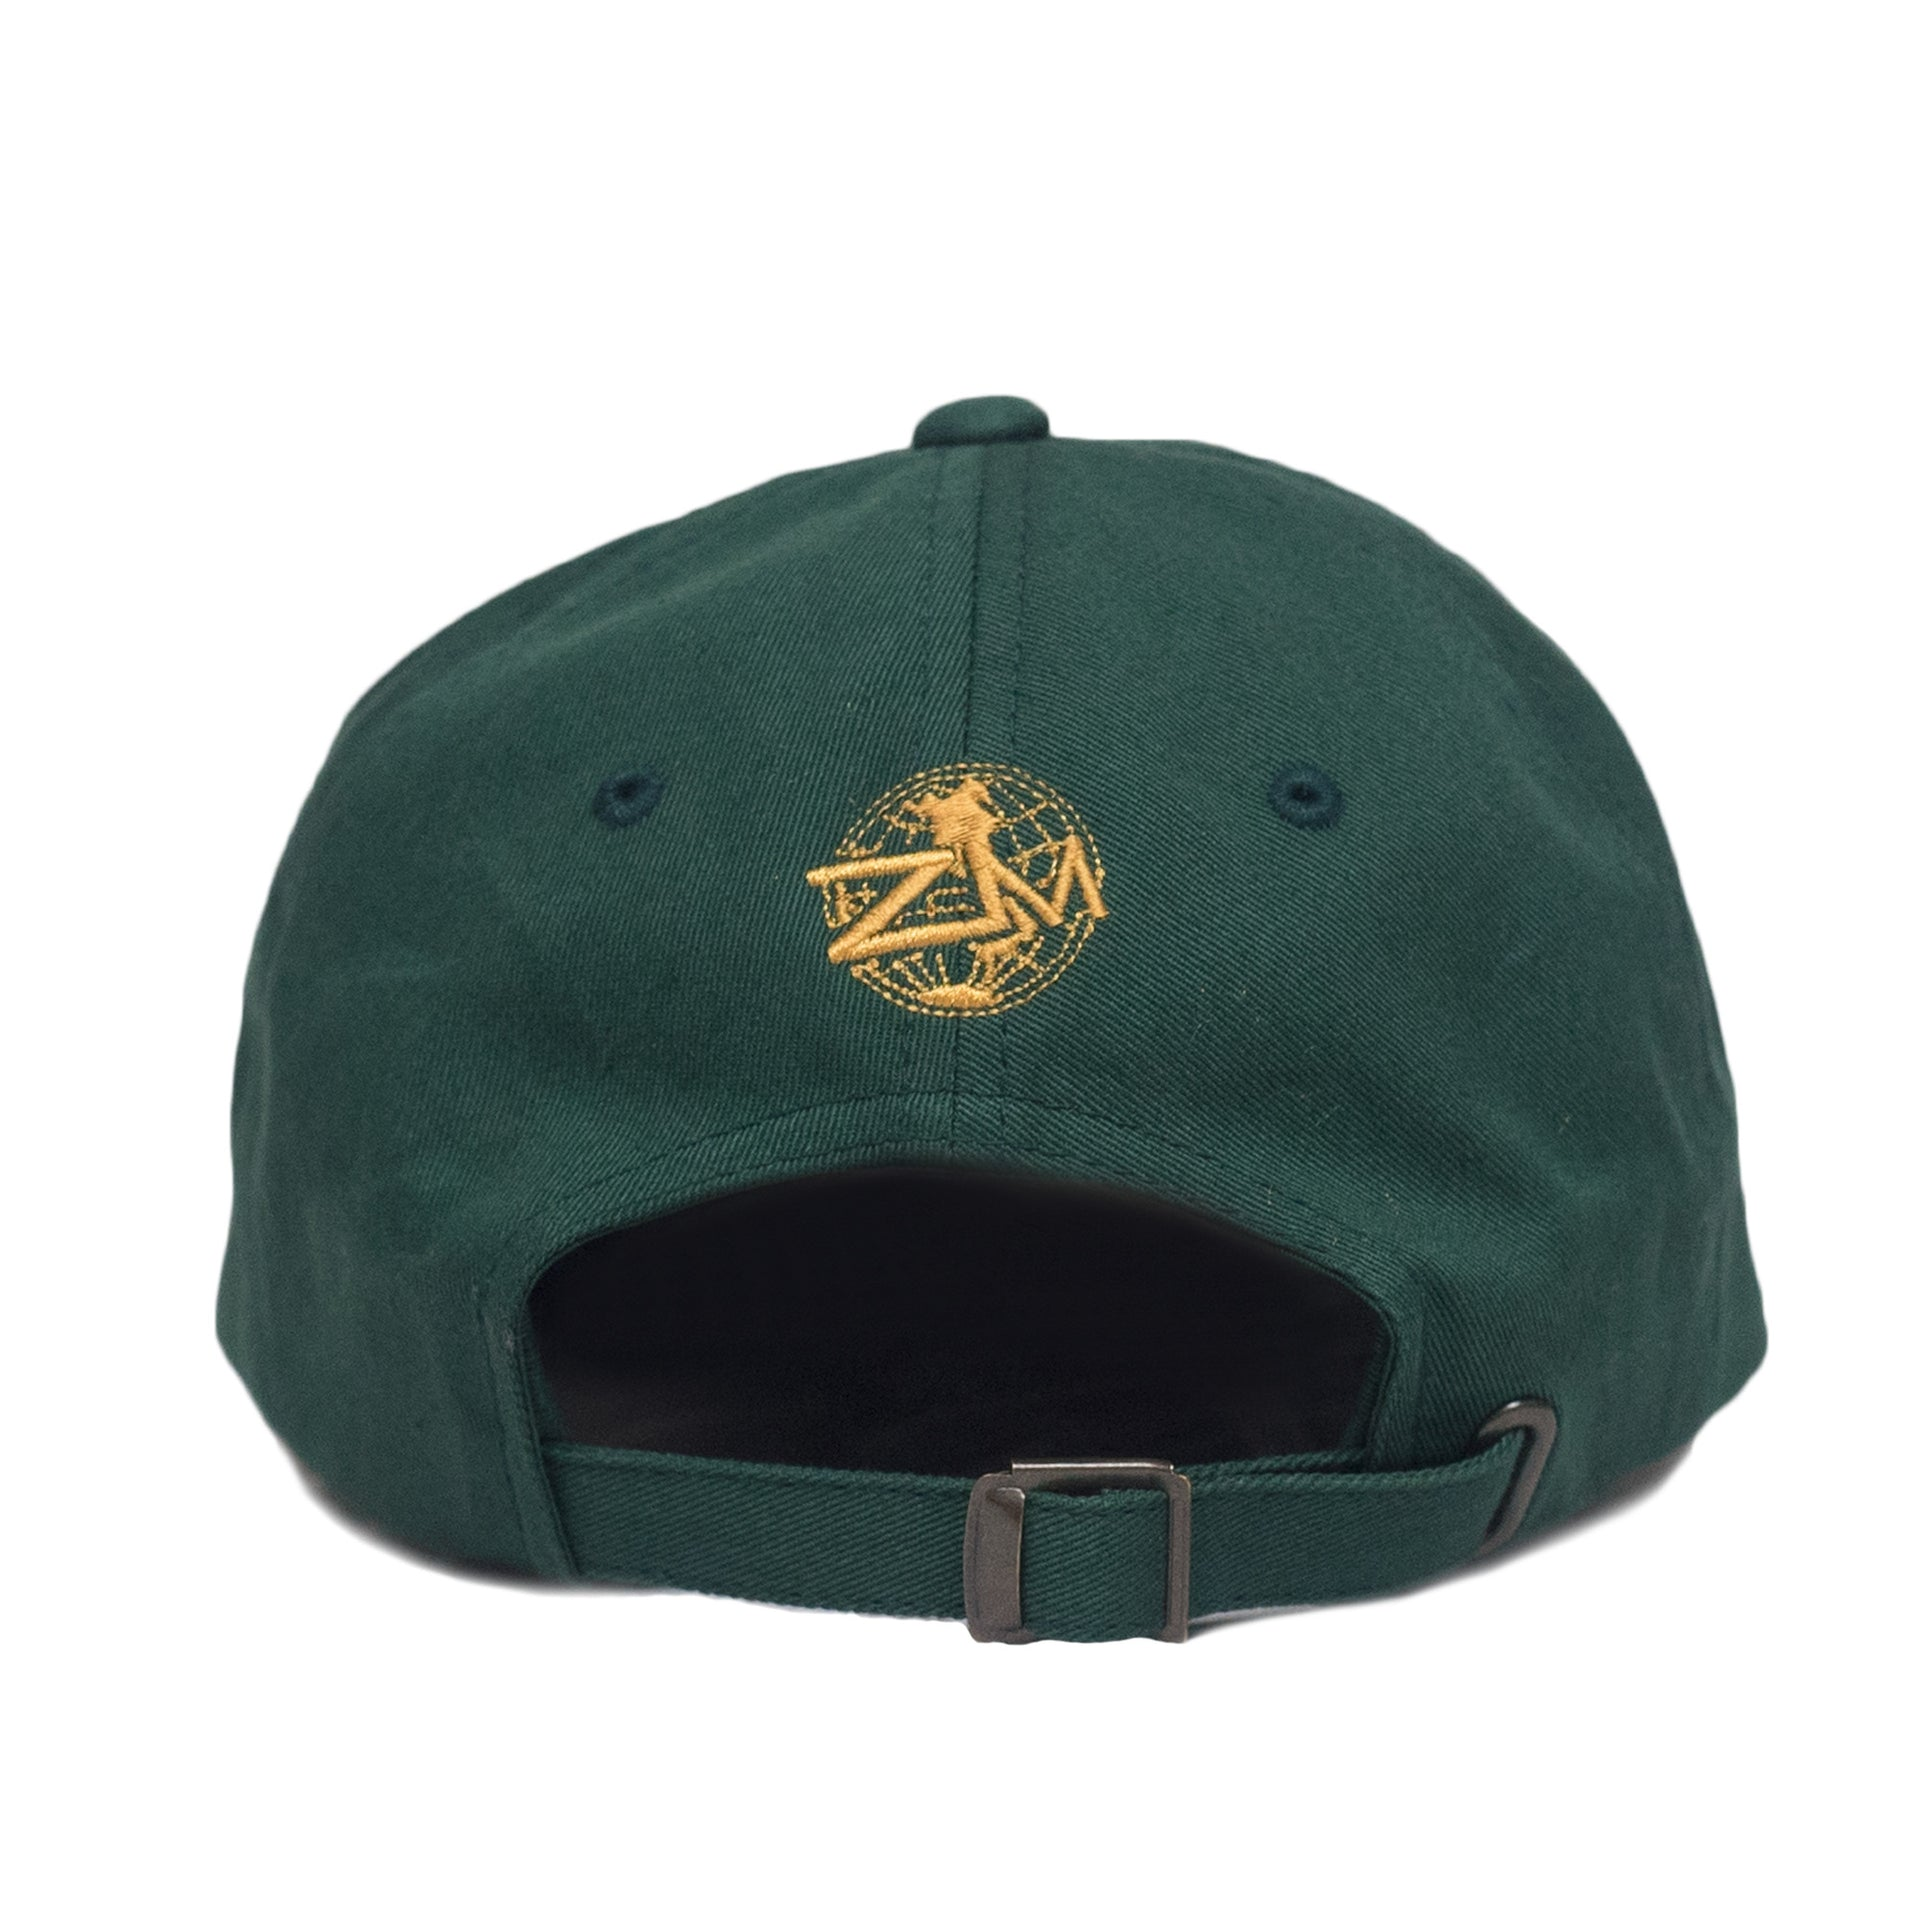 God Is My Source Dad Hat Green/Gold - hat God Is My Source